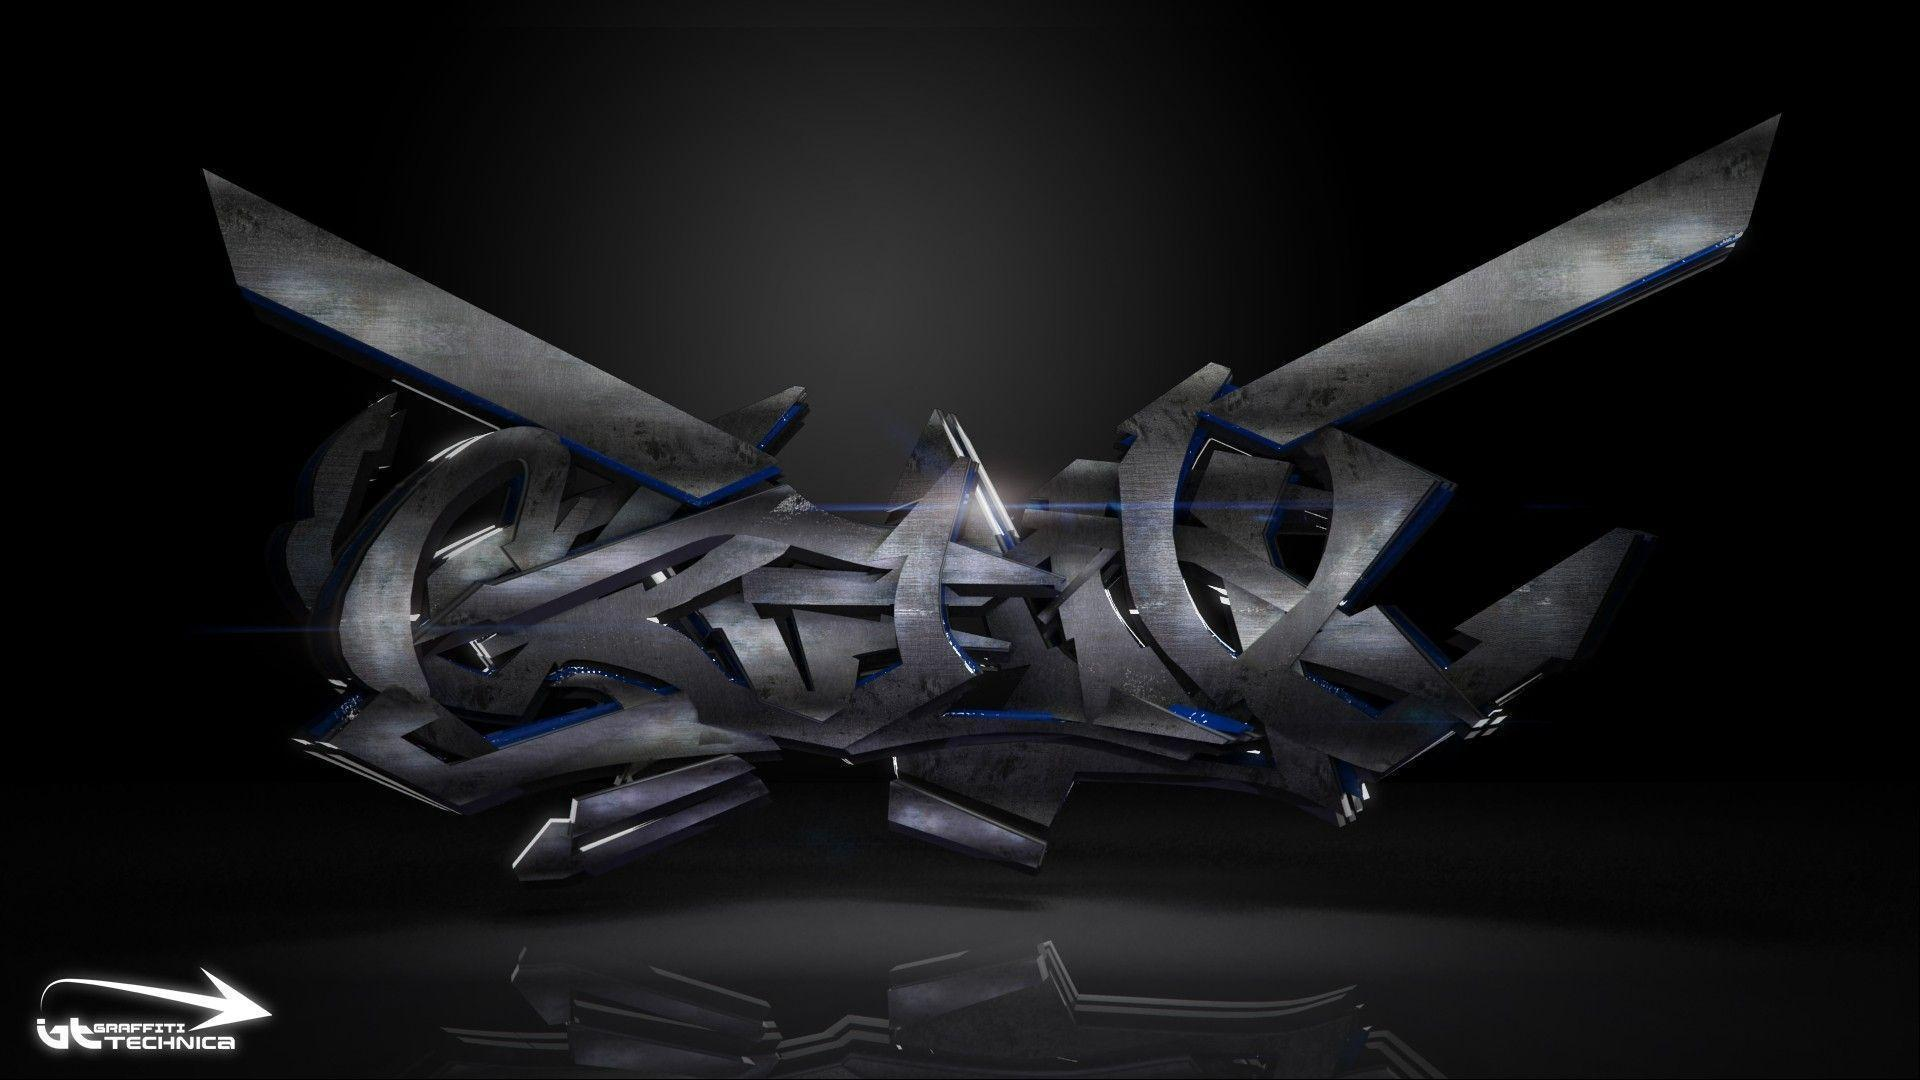 Graffiti wallpapers 3d wallpaper cave for Graffiti wallpaper